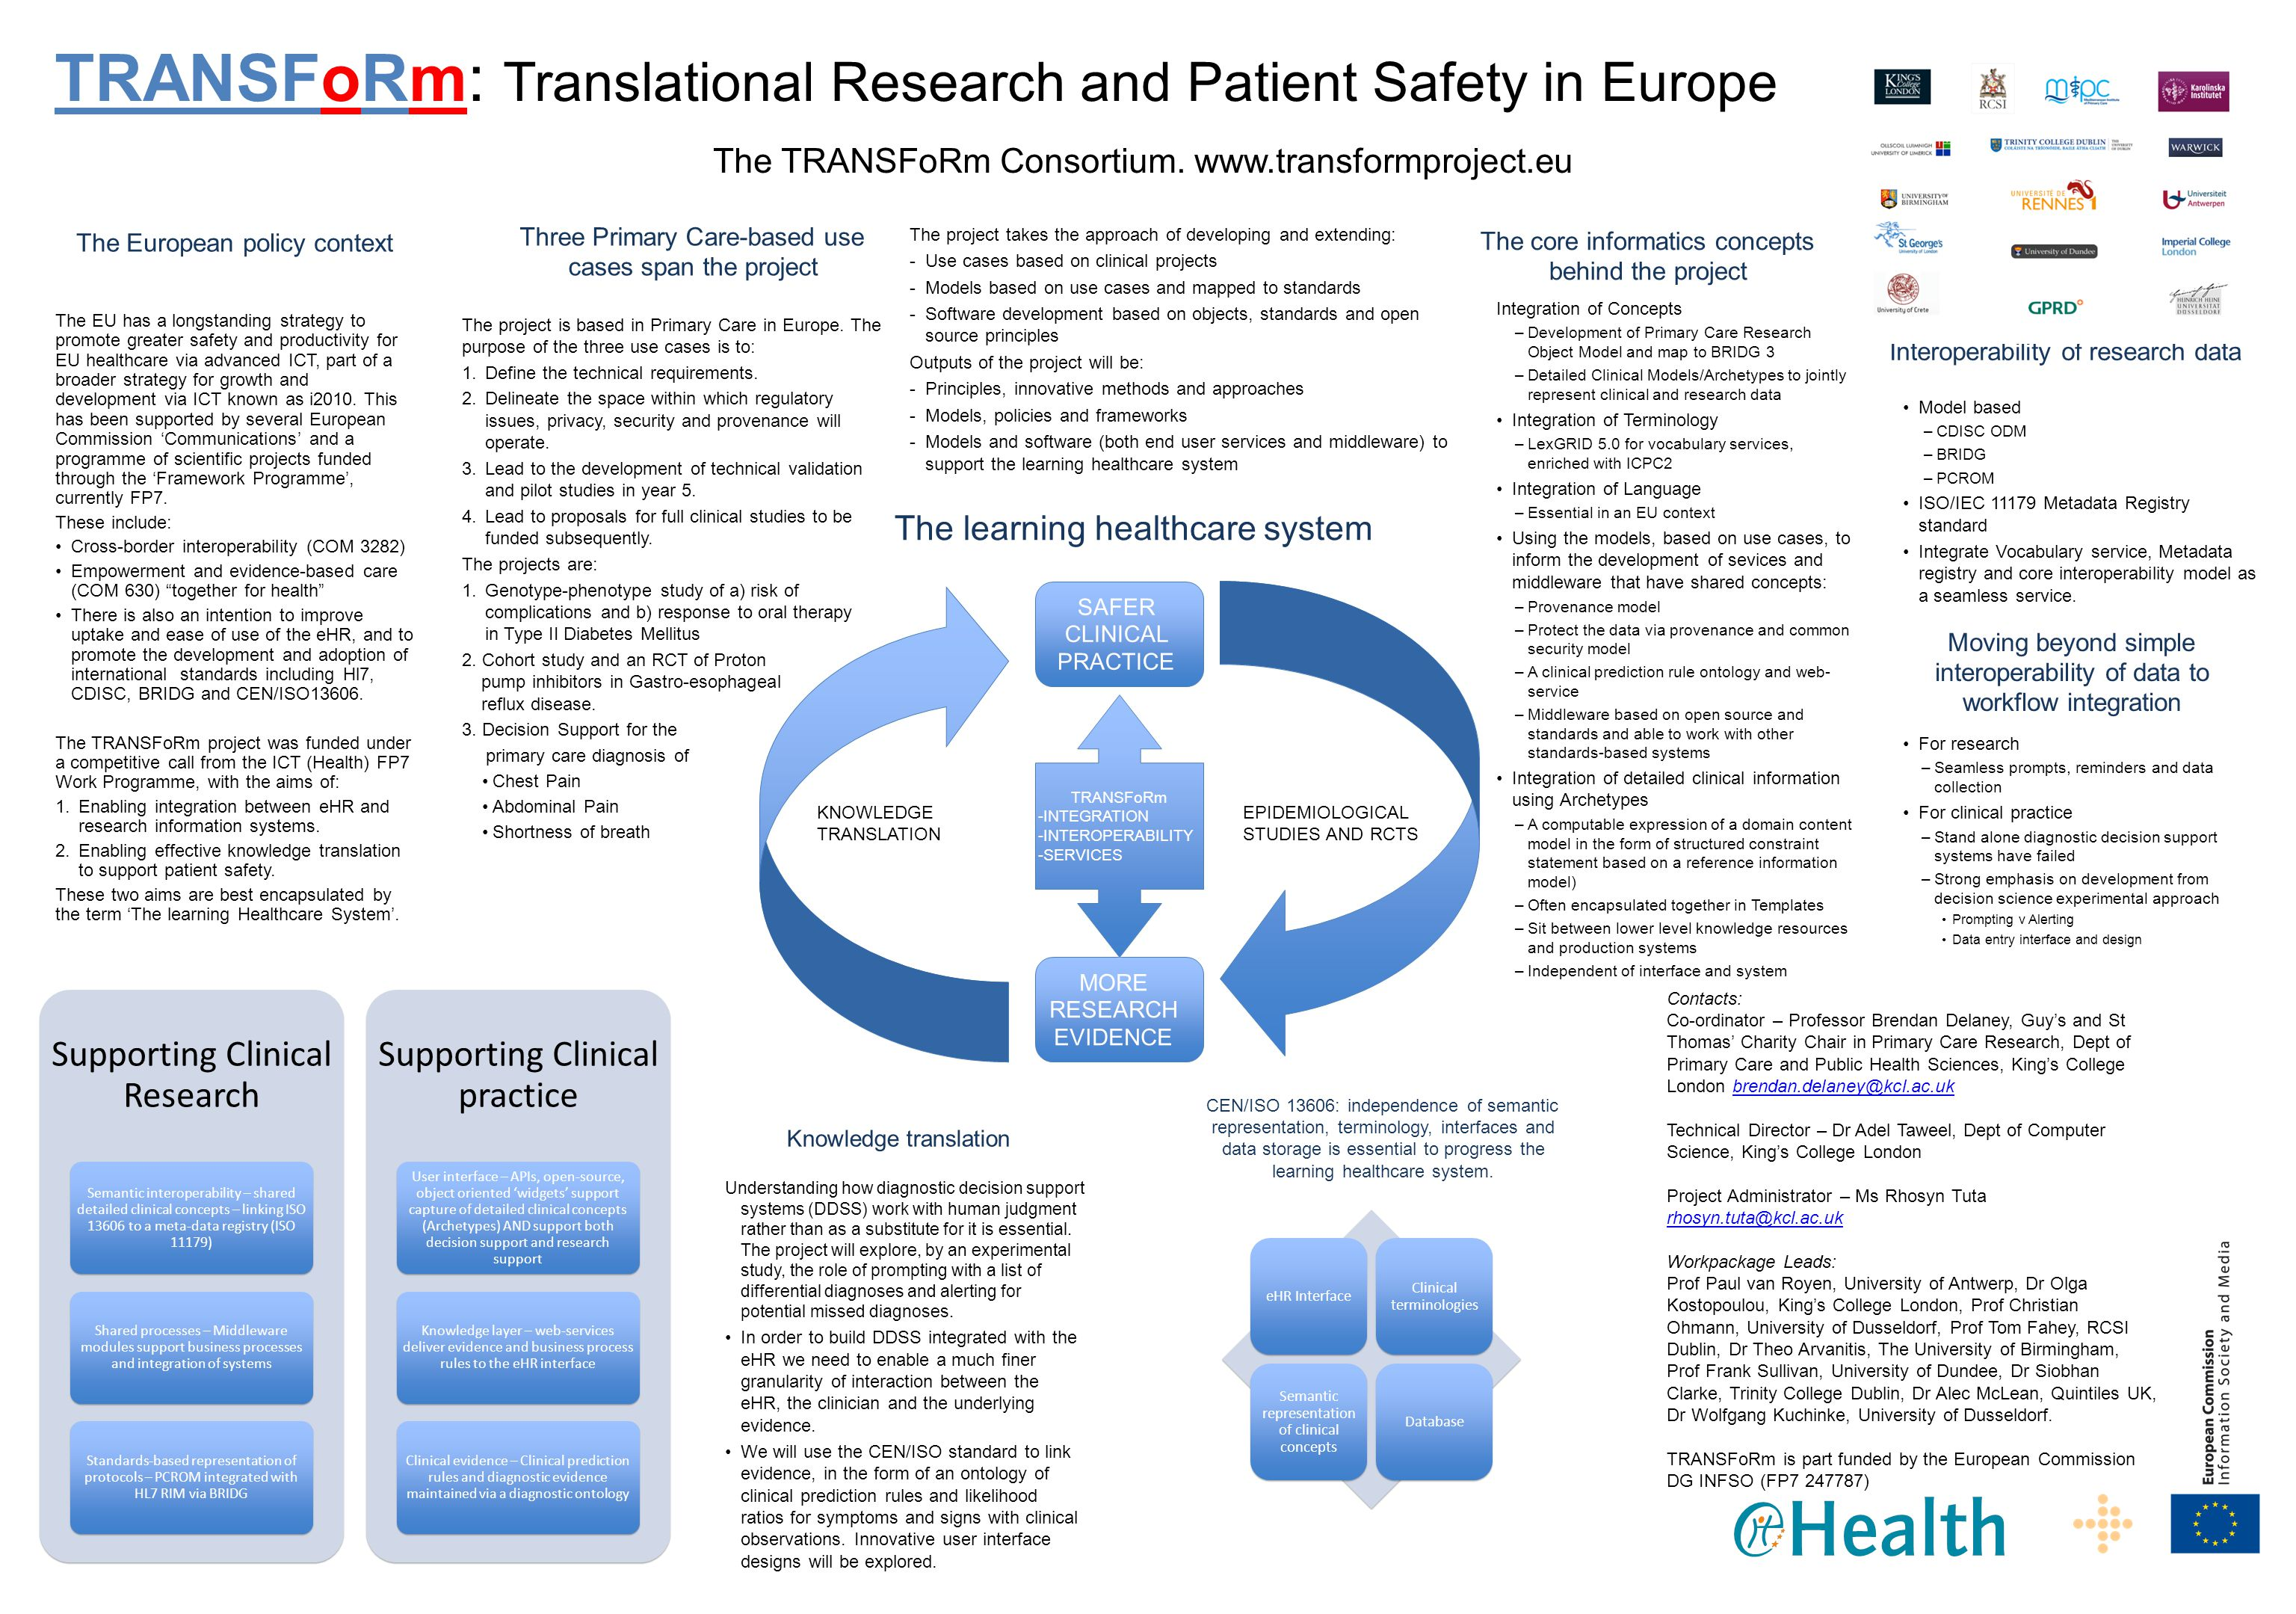 TRANSFoRm: Translational Research and Patient Safety in Europe The TRANSFoRm Consortium. www.transformproject.eu Contacts: Co-ordinator – Professor Br